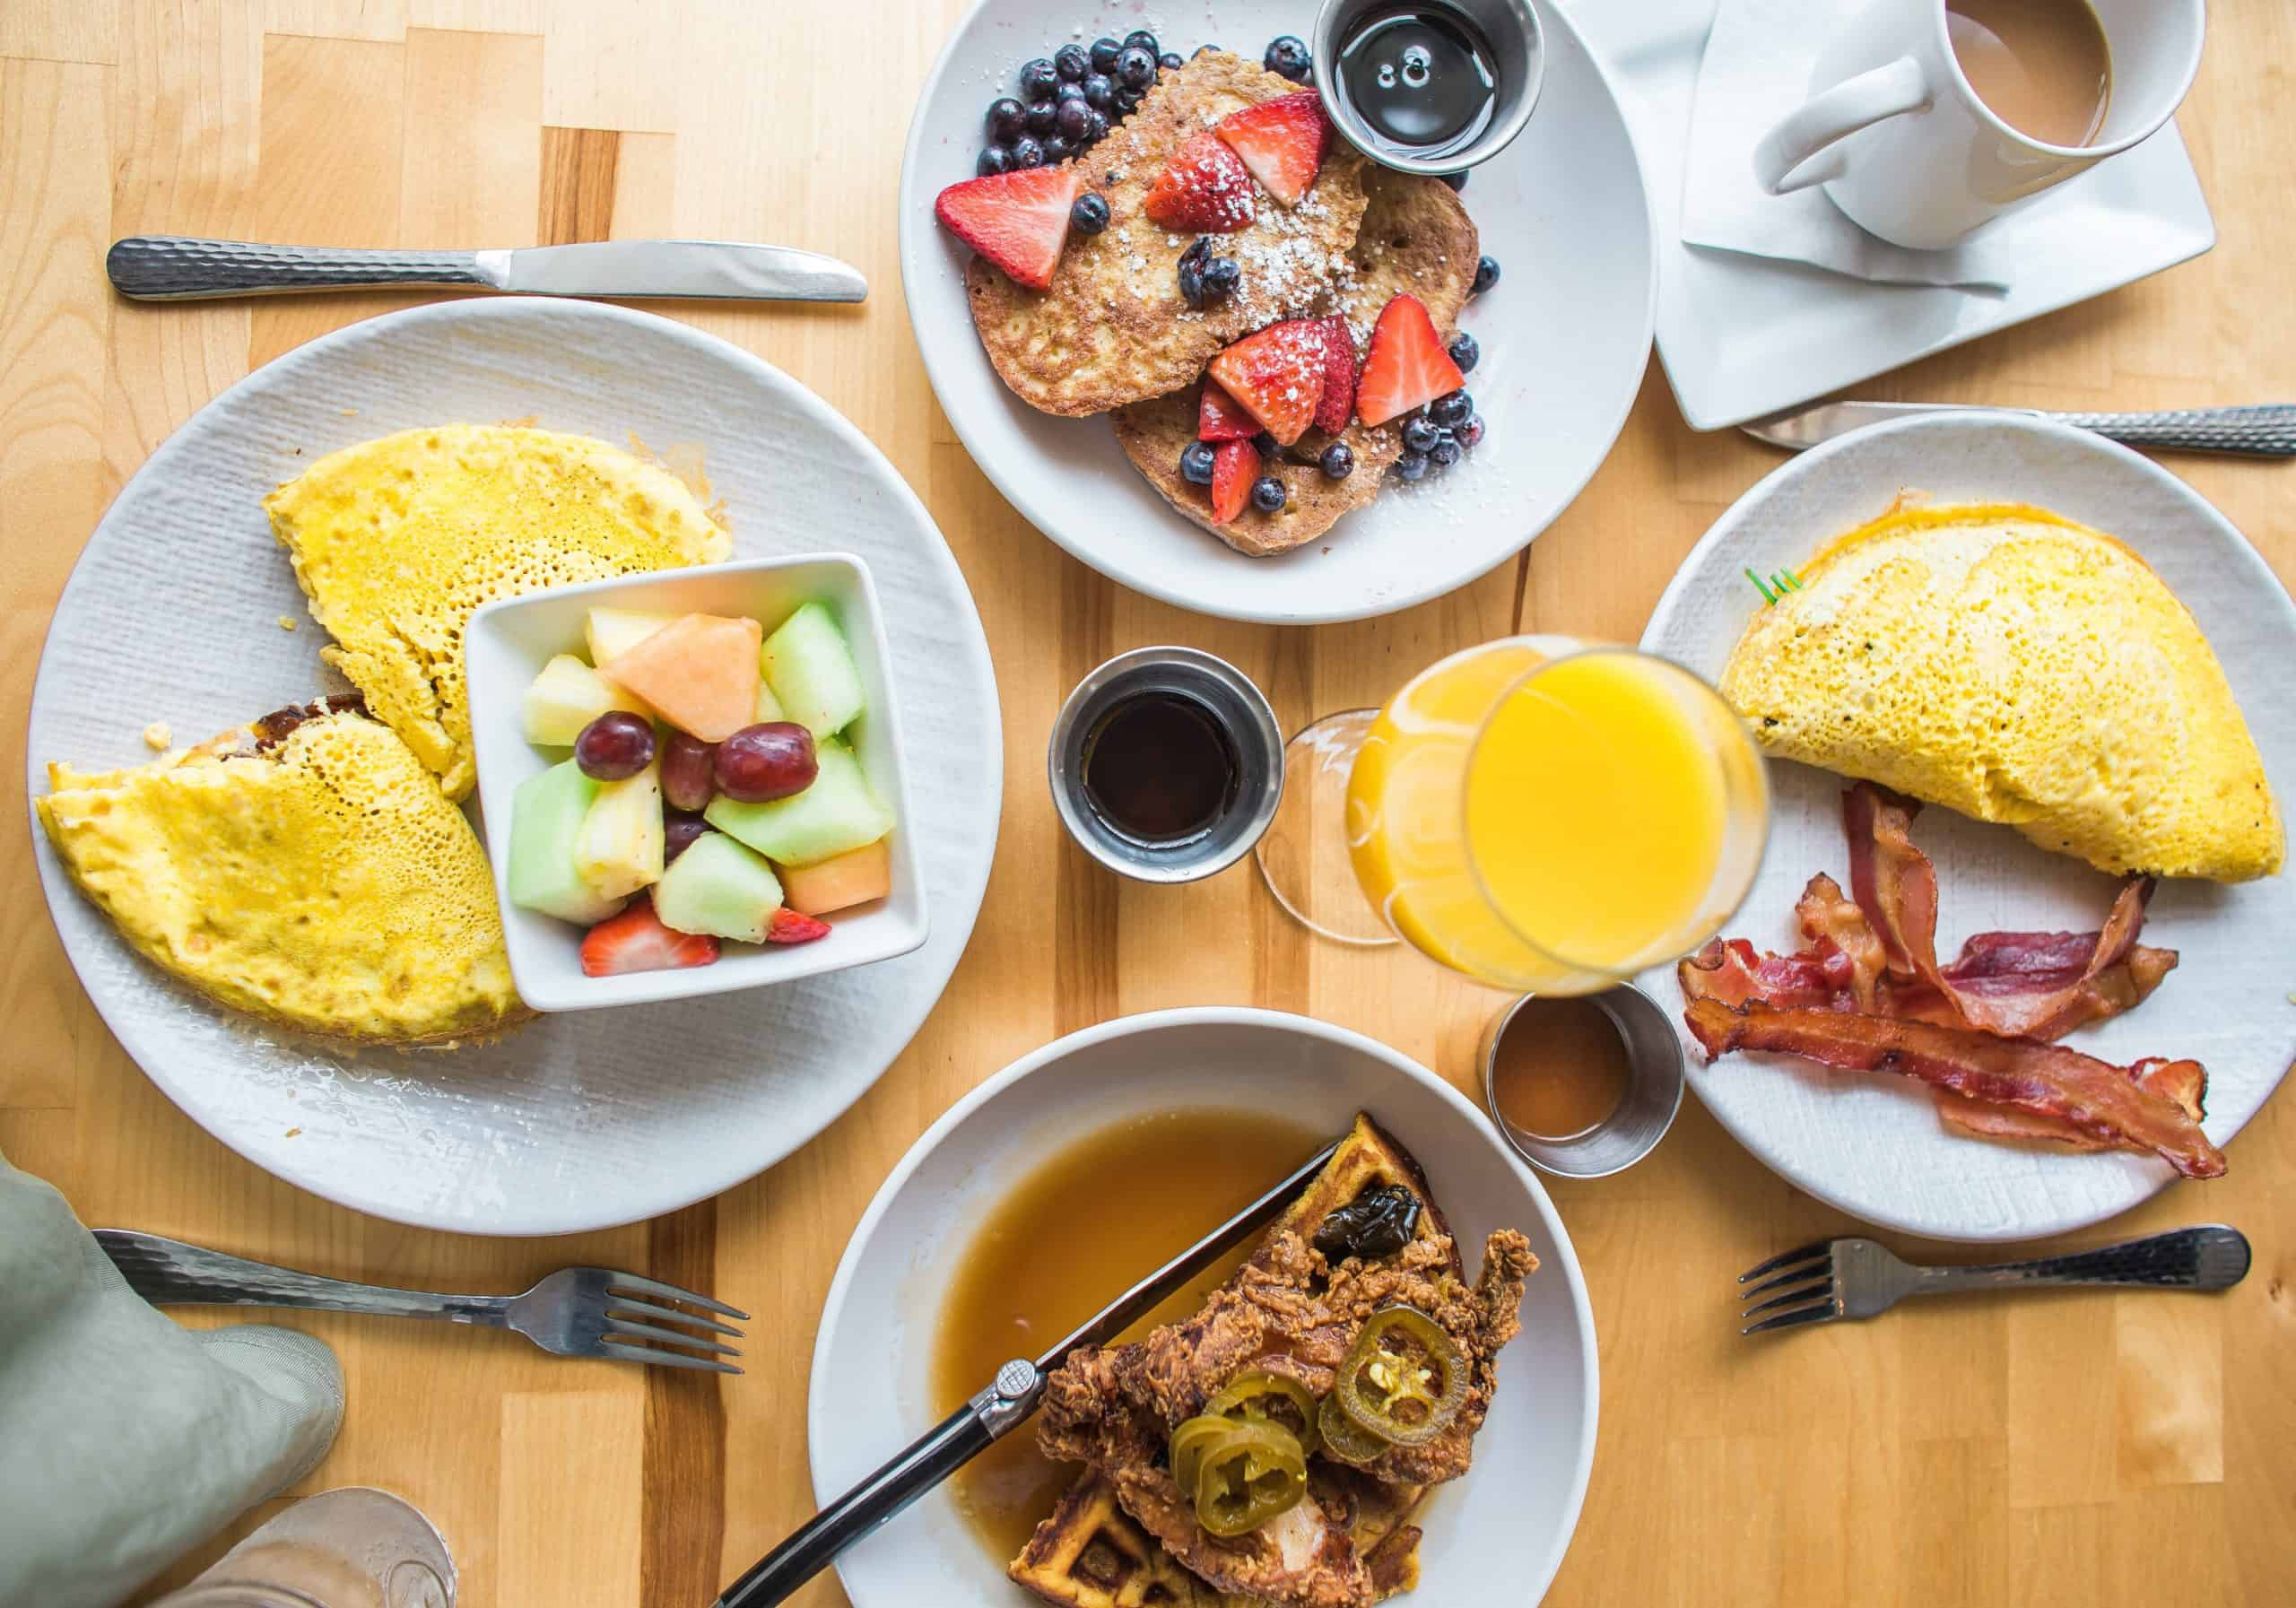 6 Rules For That Unforgettable Brunch